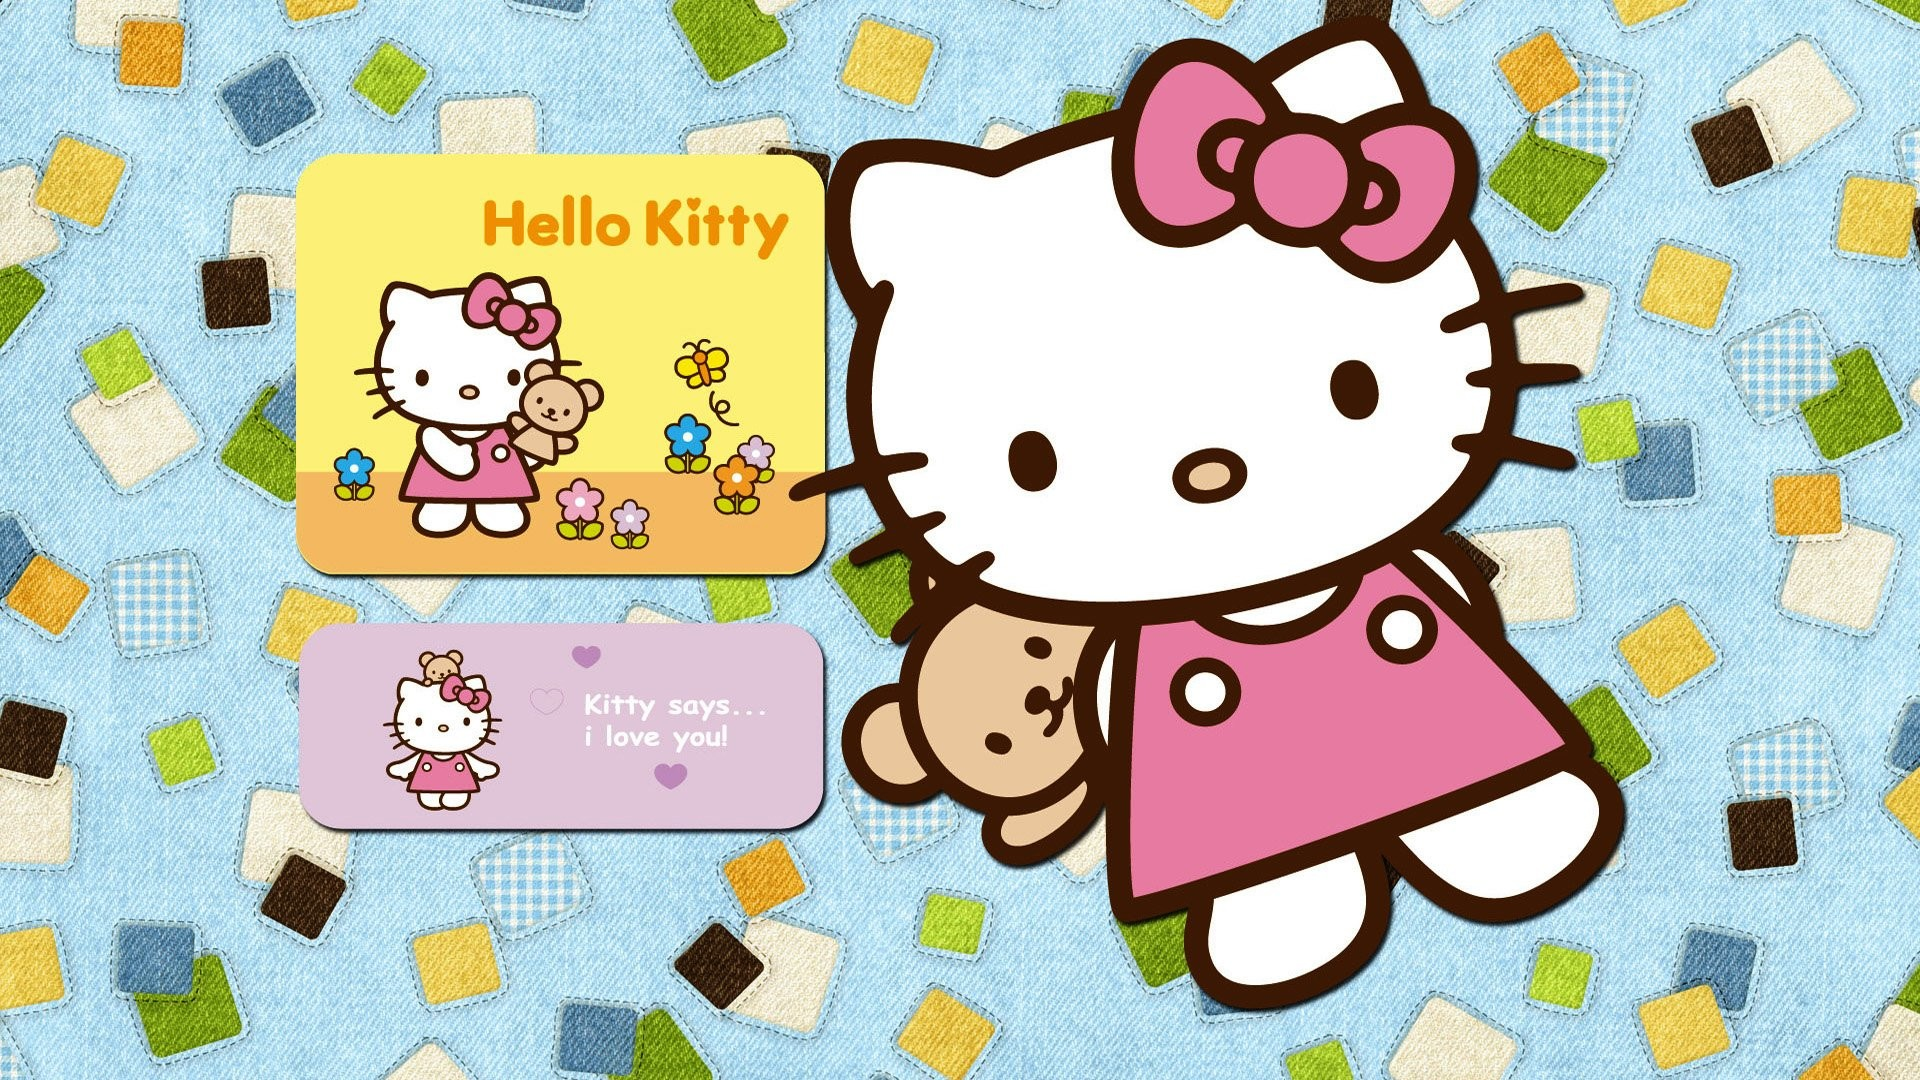 Wonderful Wallpaper Hello Kitty Holiday - 879931-best-hello-kitty-pictures-wallpaper-1920x1080  You Should Have_711519.jpg